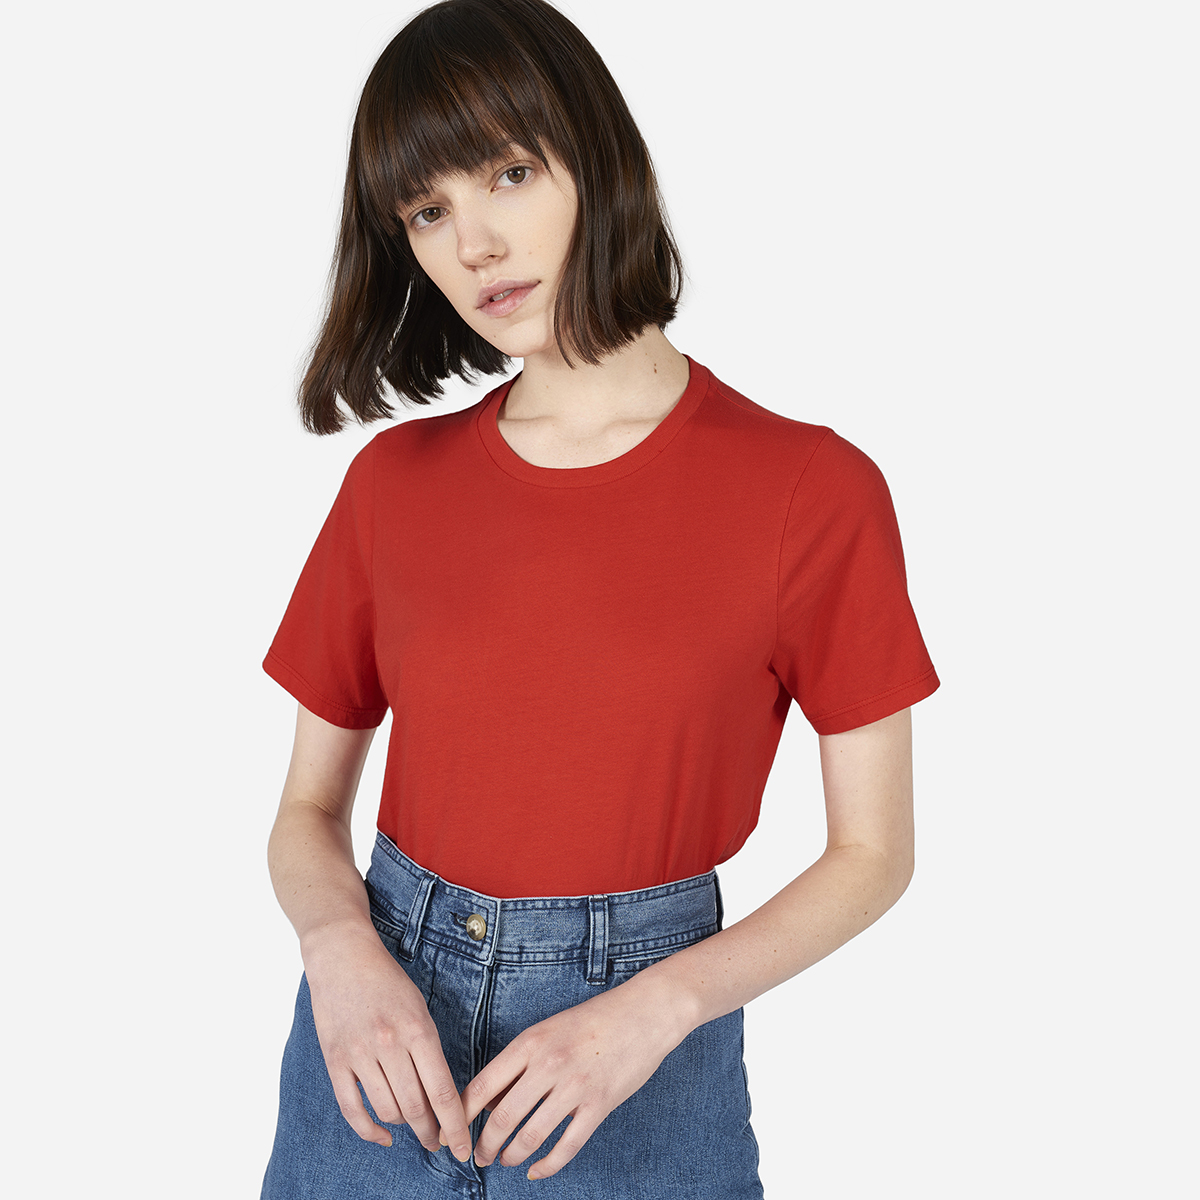 Everyone Classic Crew T-shirt in Red USD $18